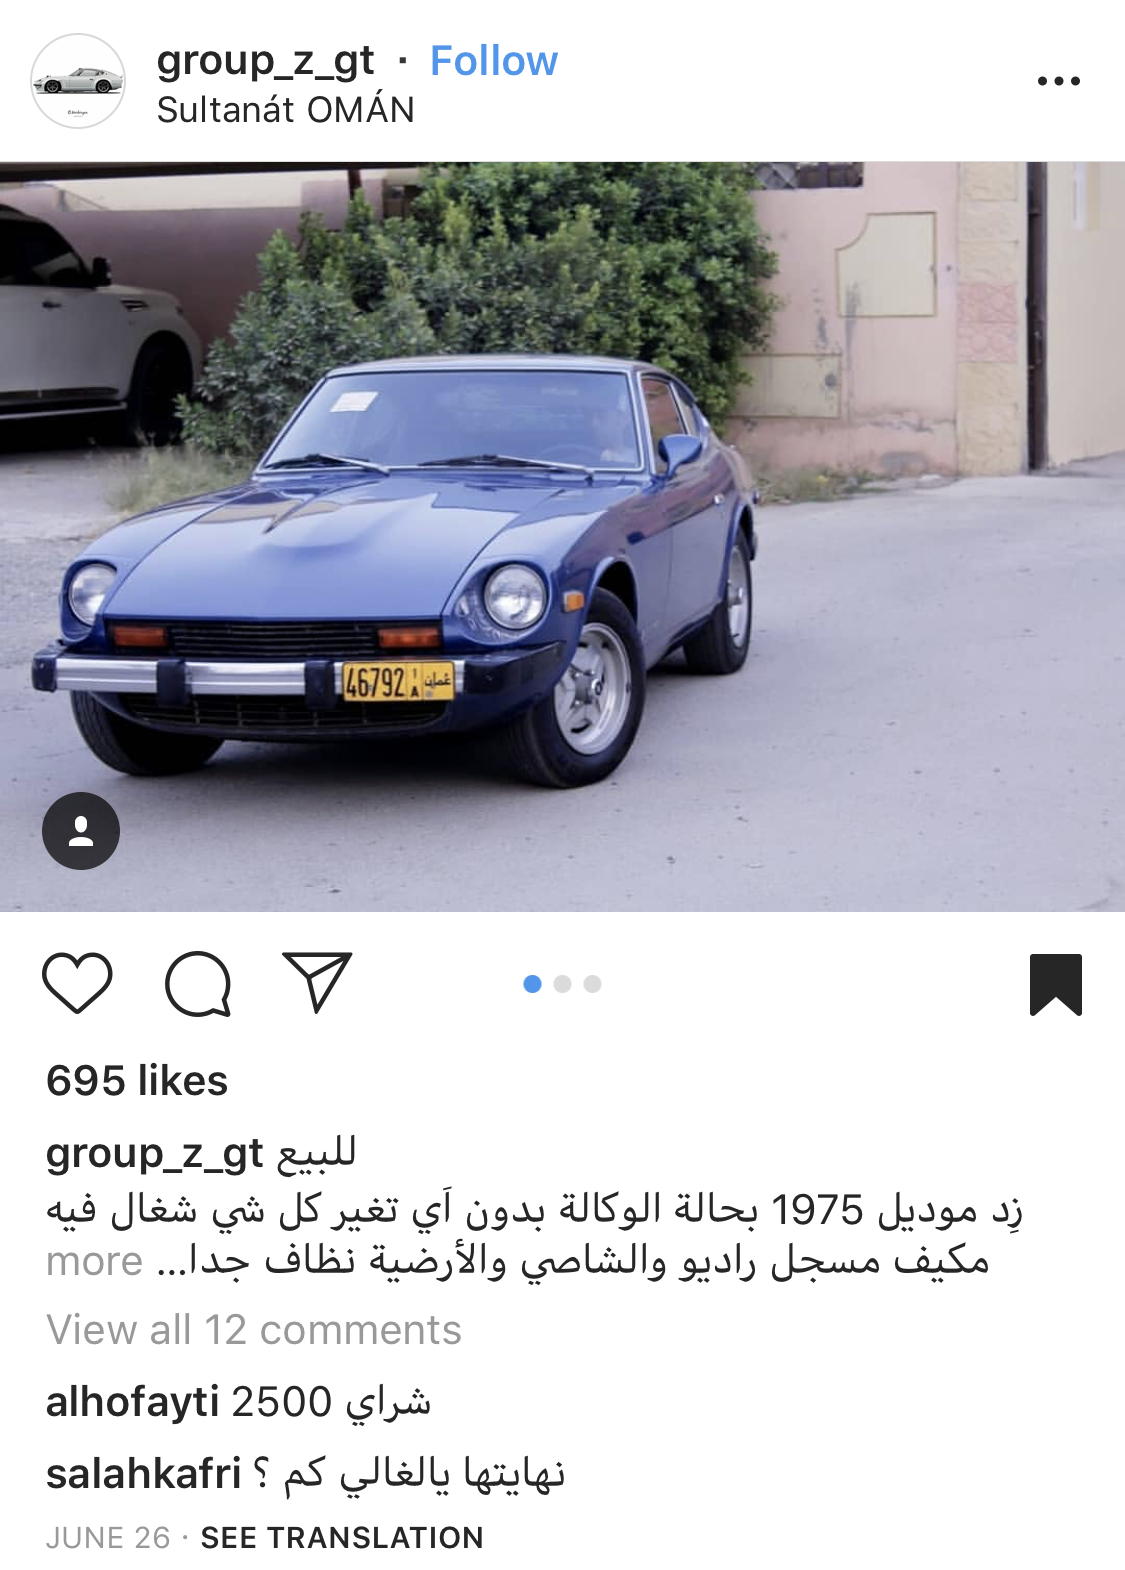 The Datsun I wanted... in Oman!